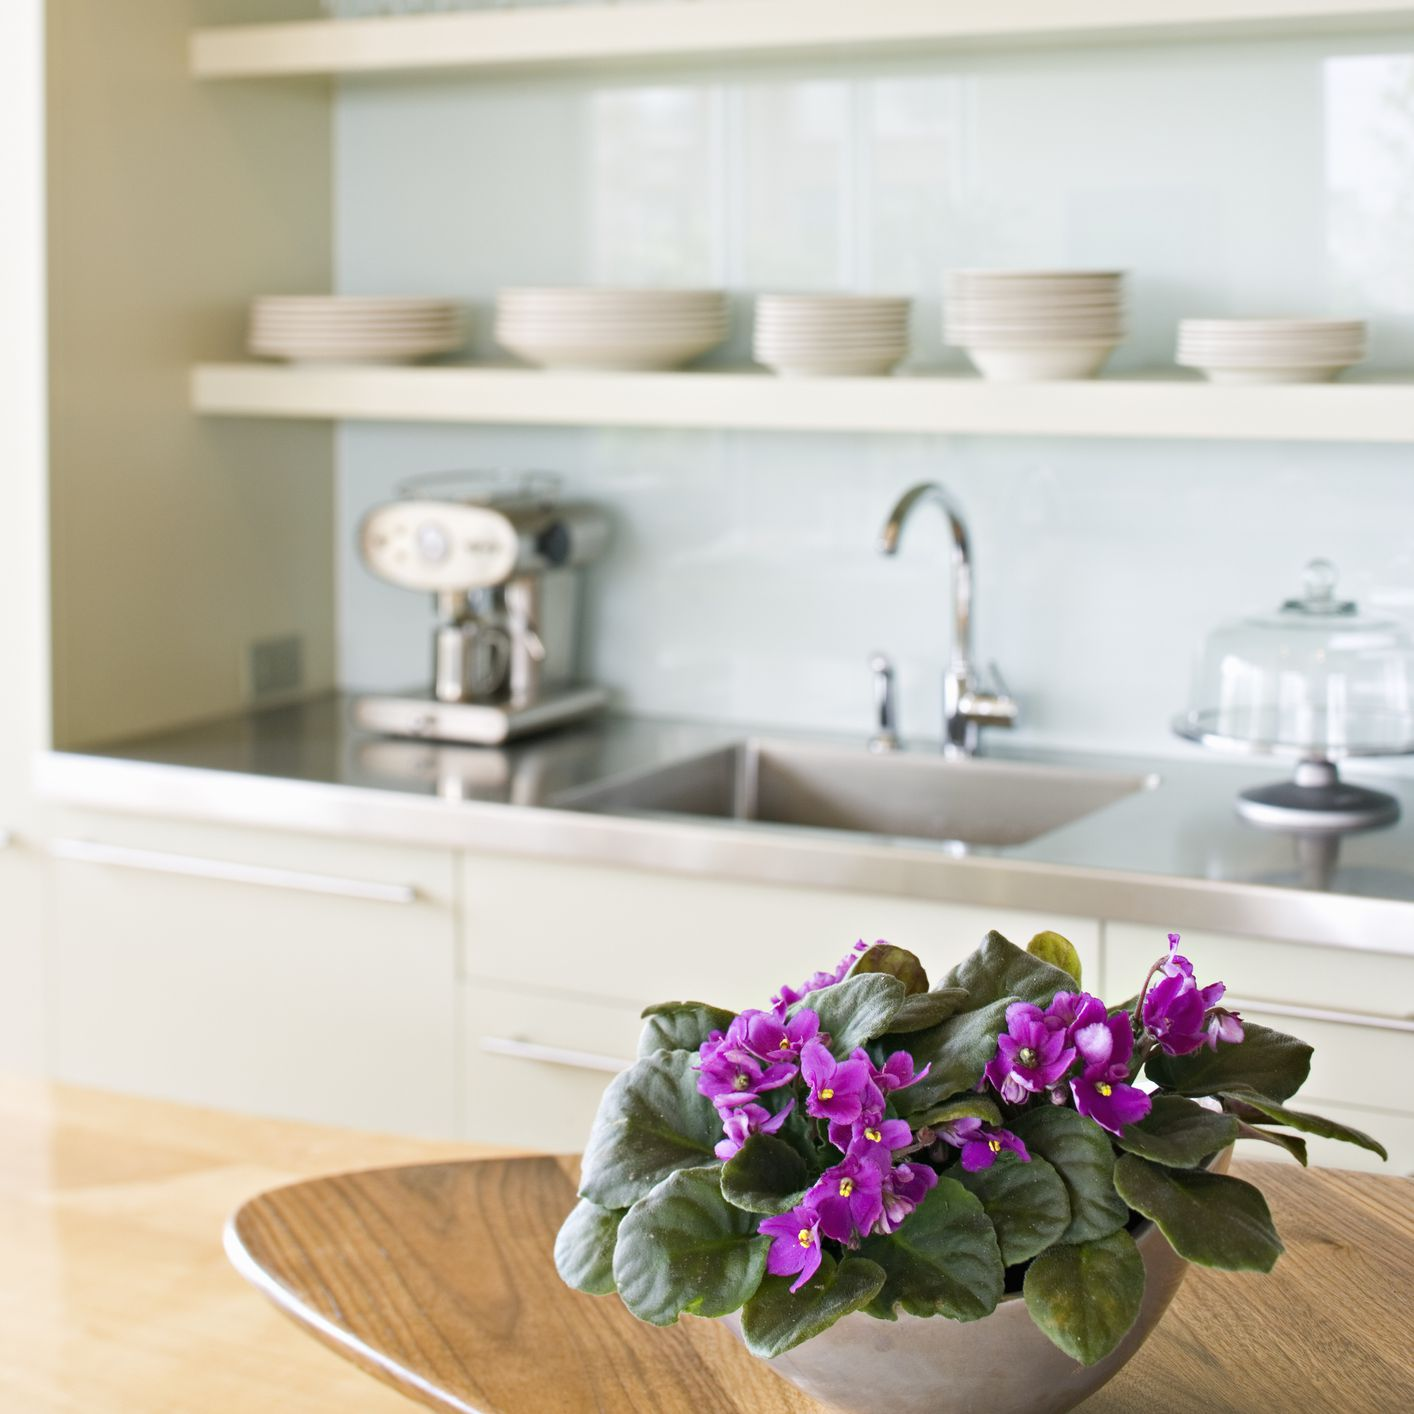 purple african violets on wood counter in white kitchen